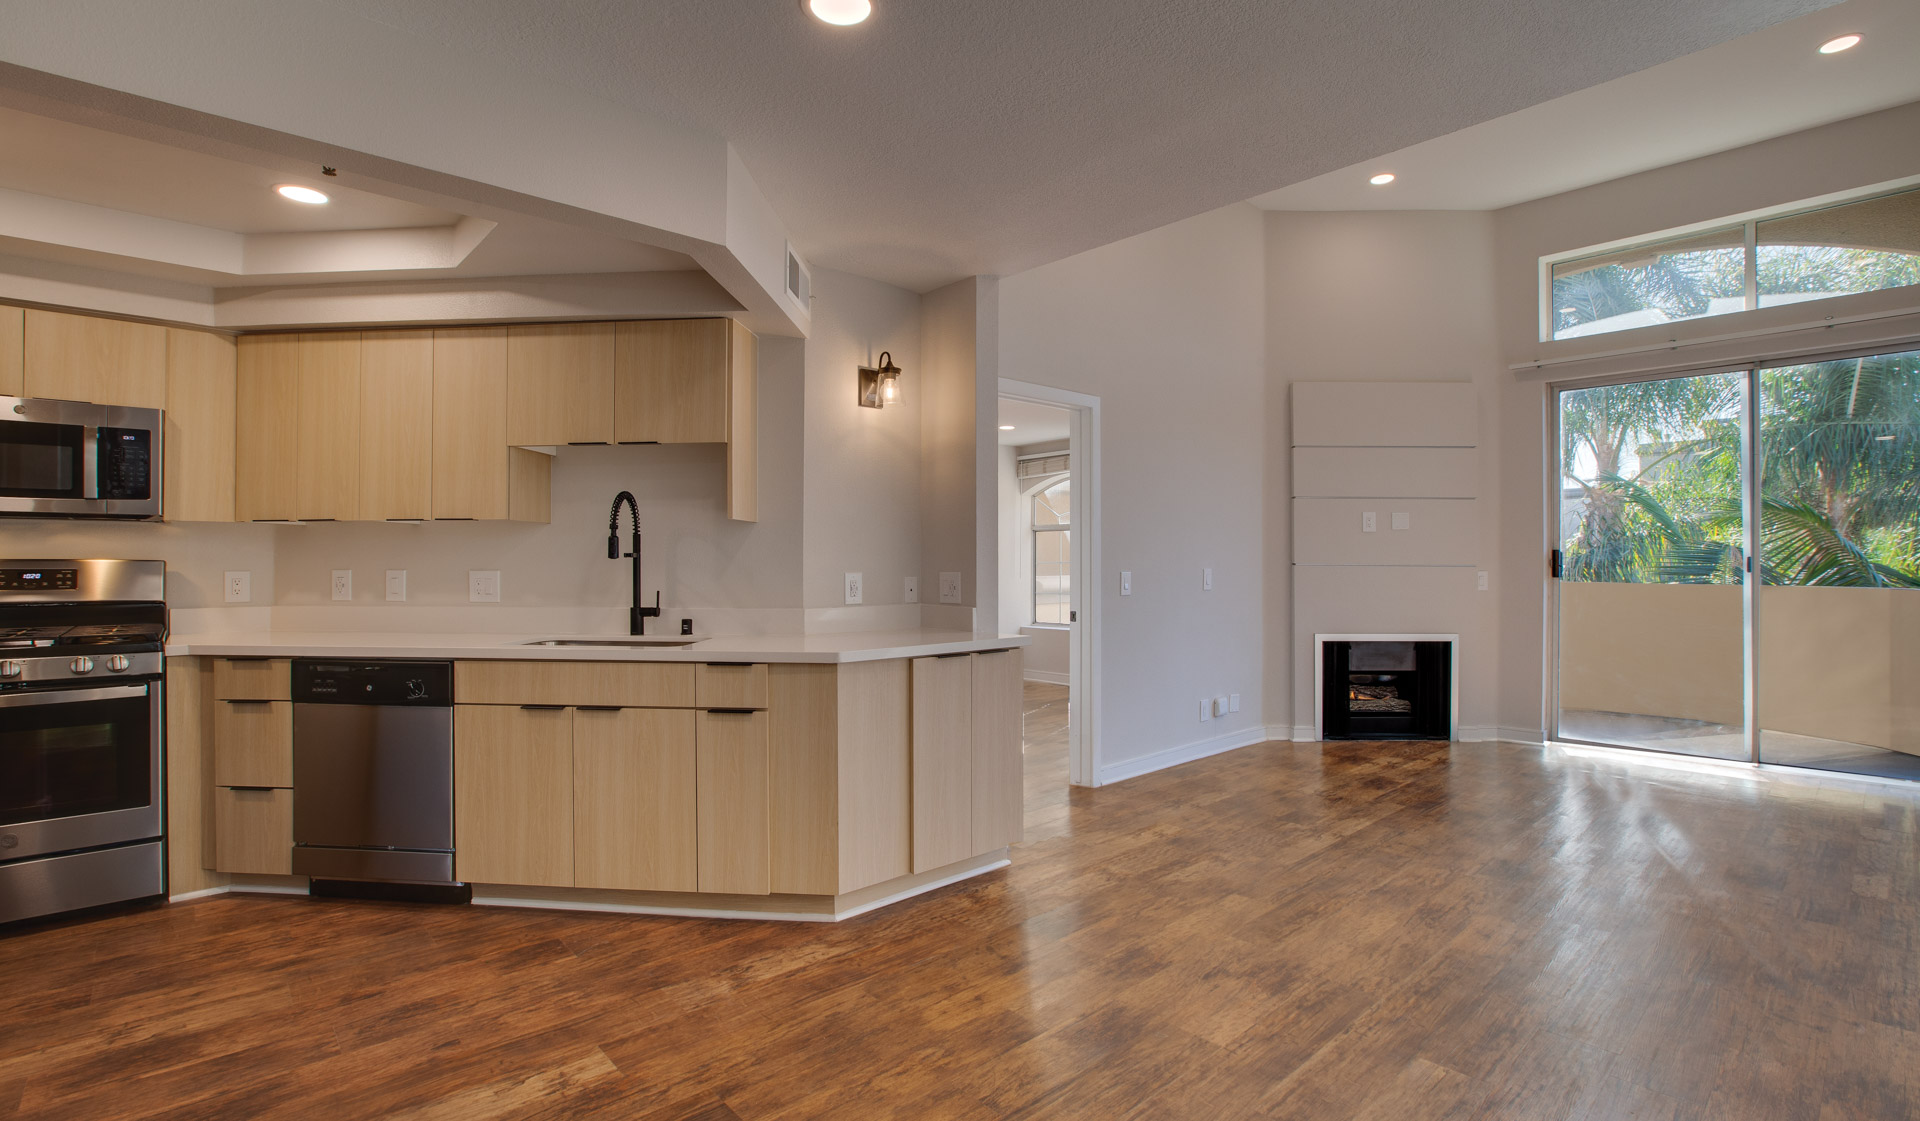 Broadcast Center Apartments in Los Angeles, CA -premier kitchen